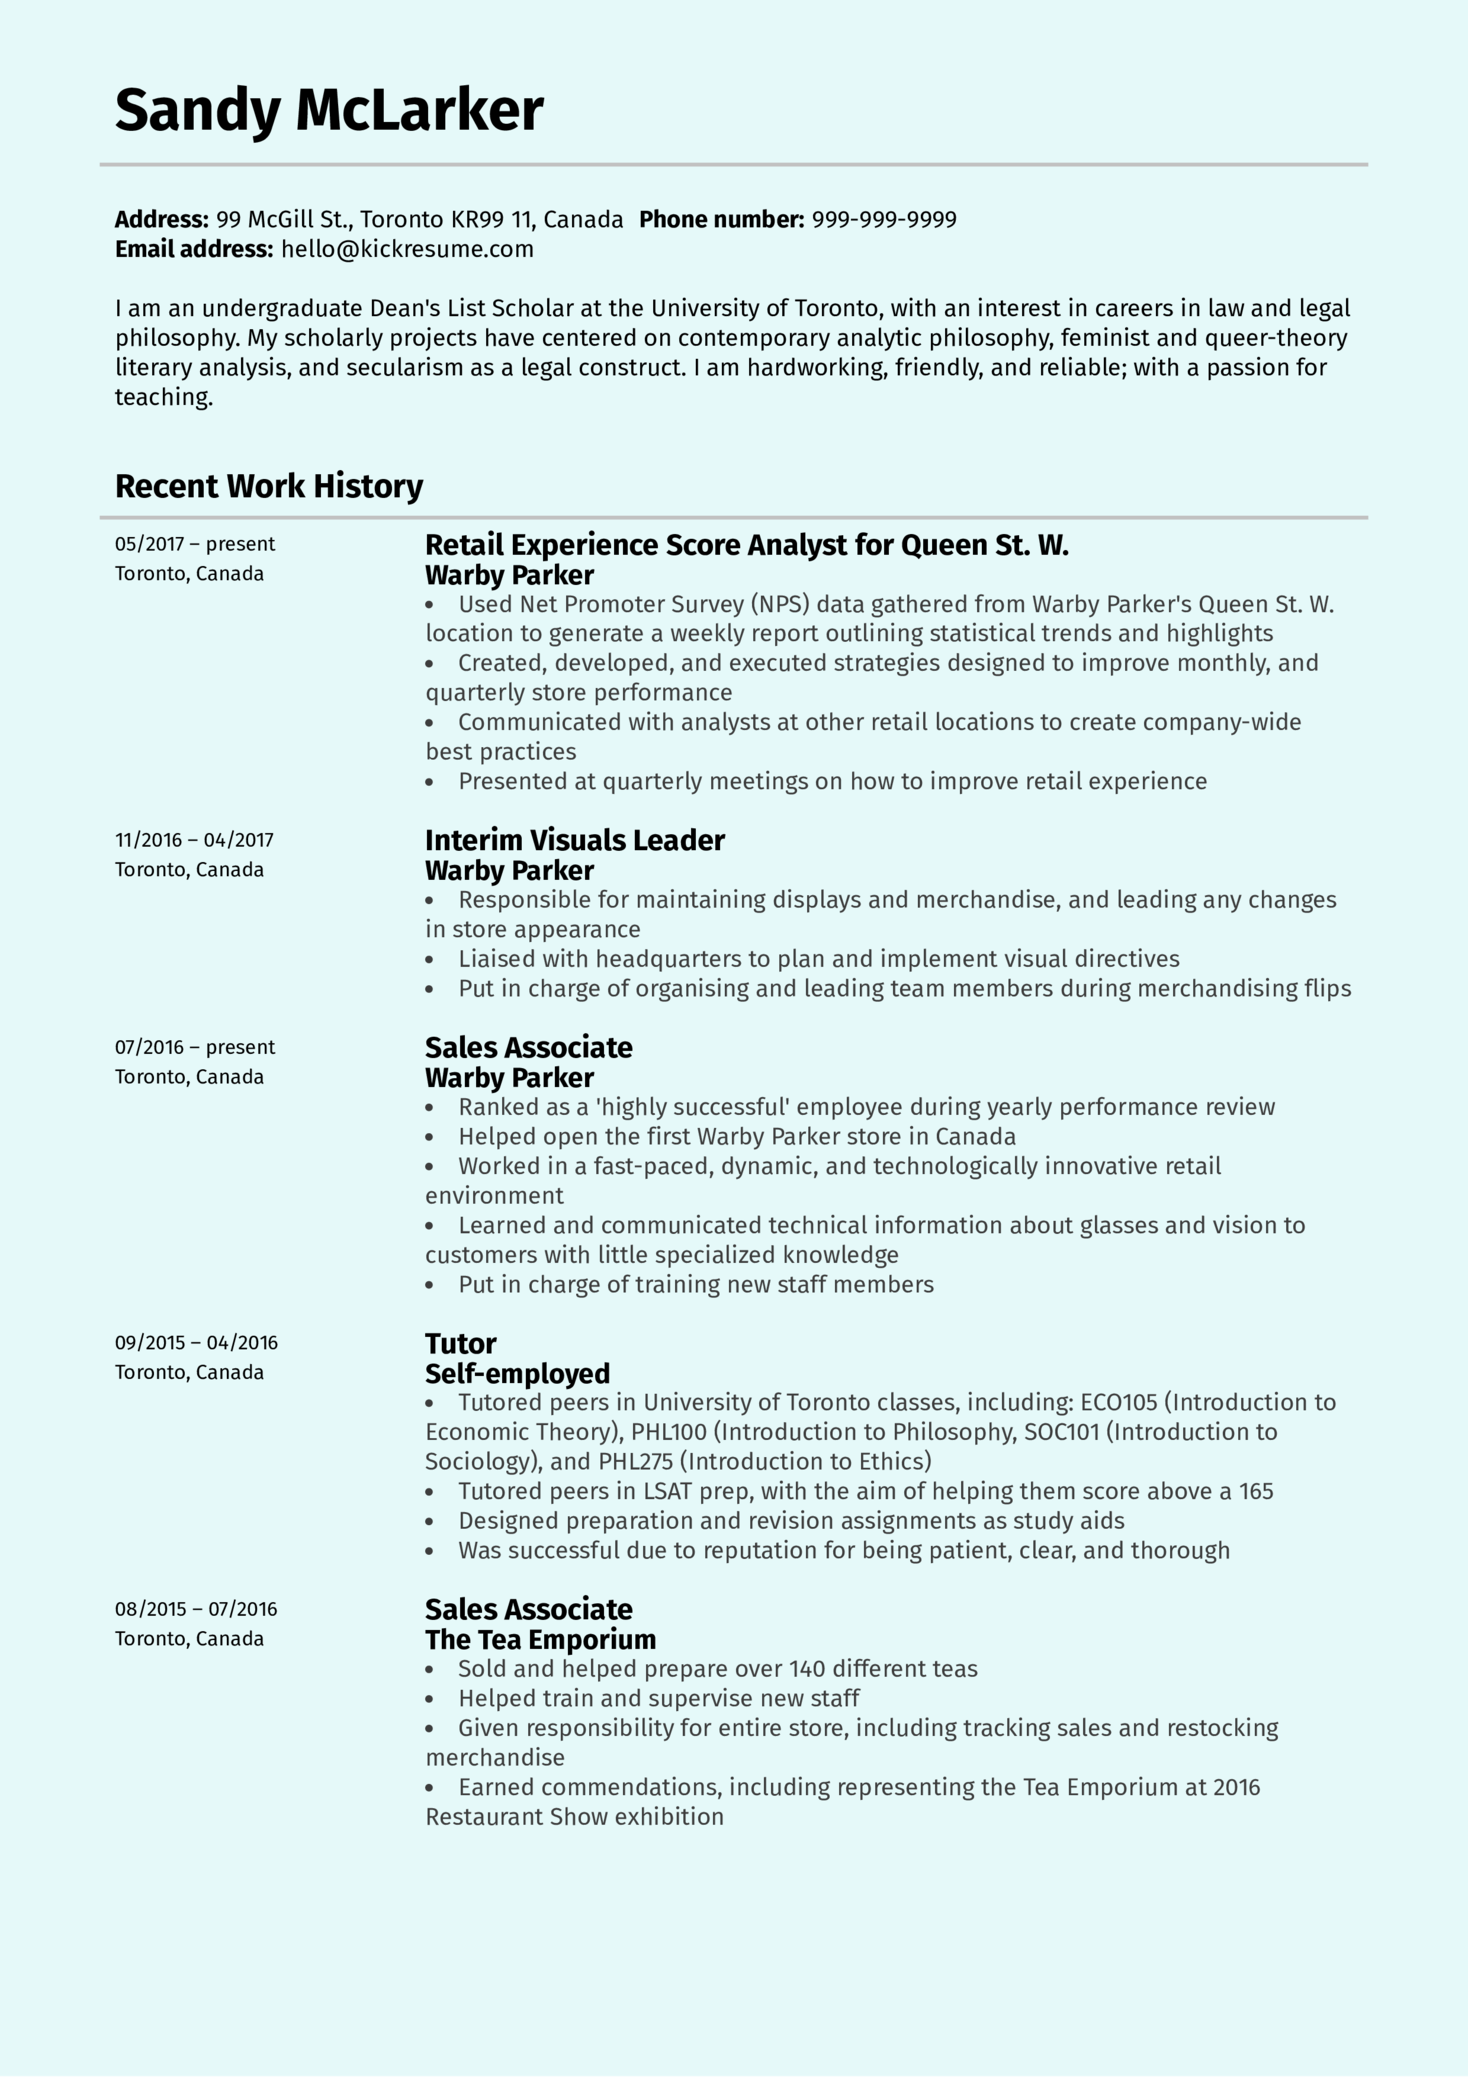 Retail Experience Analyst at Warby Parker Resume Sample (parte 1)